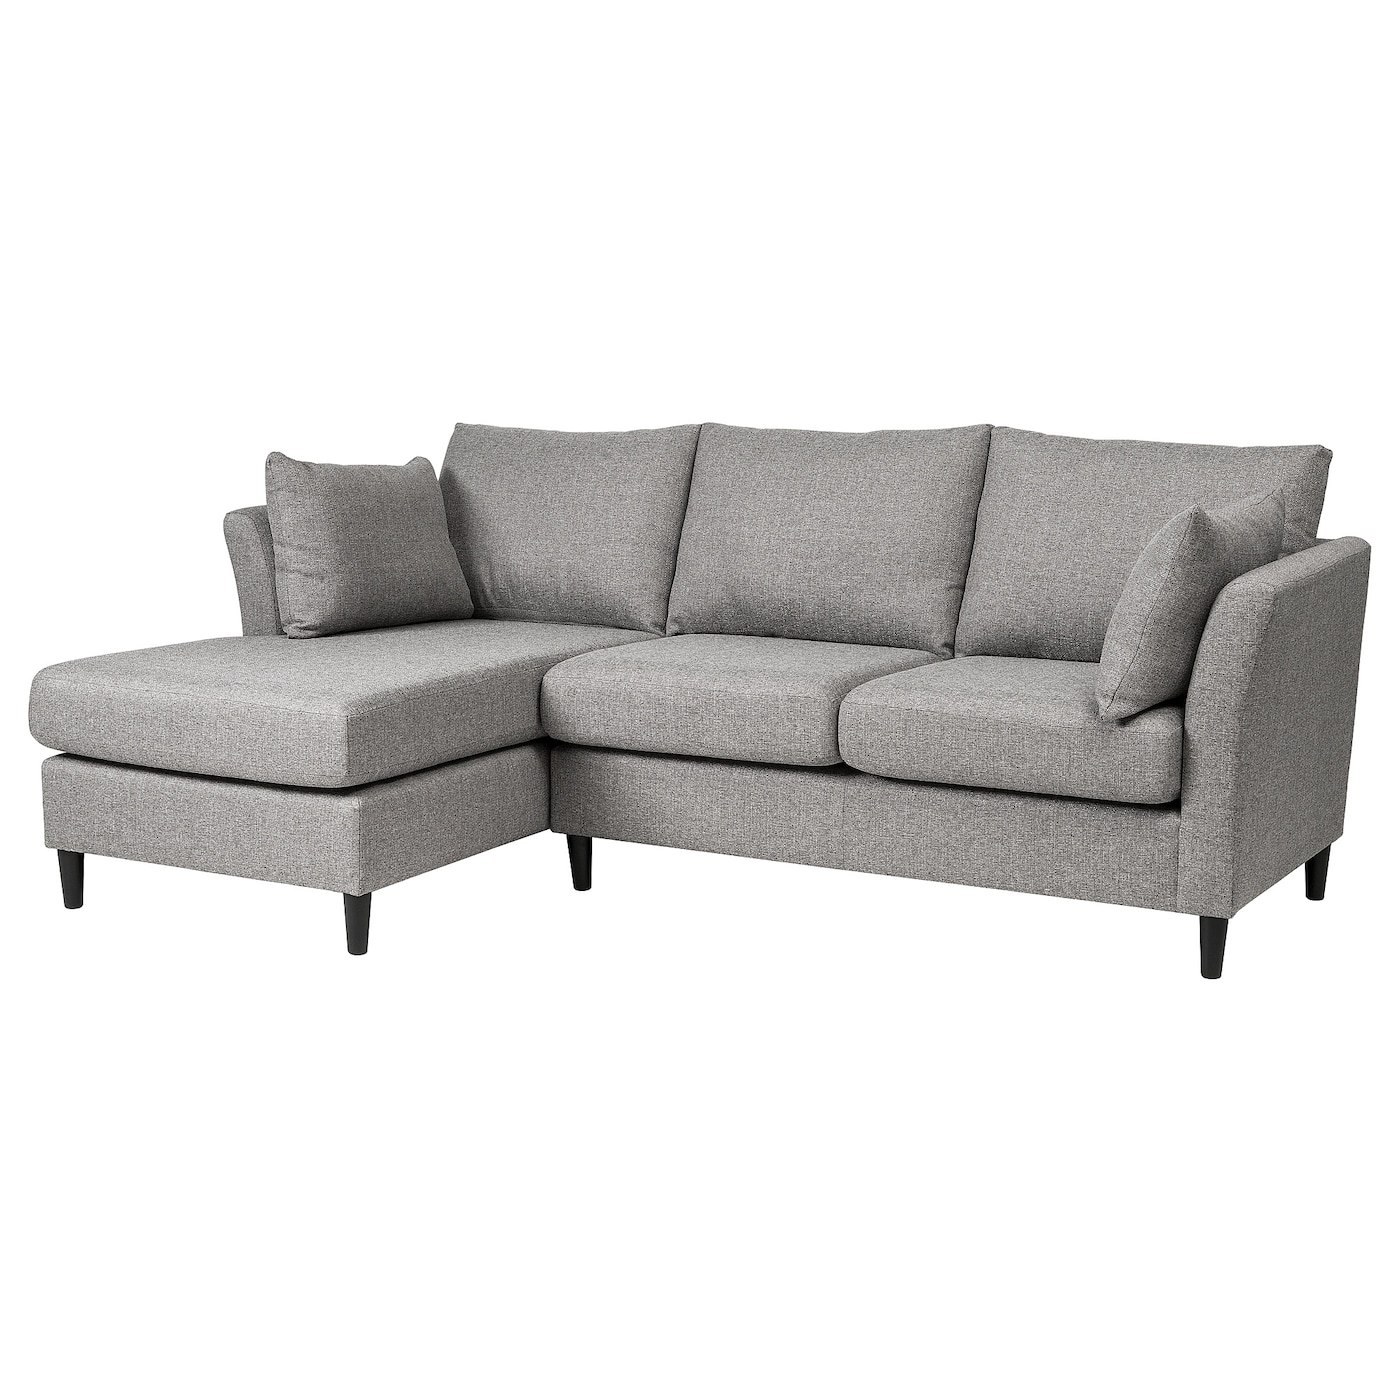 2 seater sofa with chaise sofas 2 3 seater fabric leather for 3 seater couch with chaise